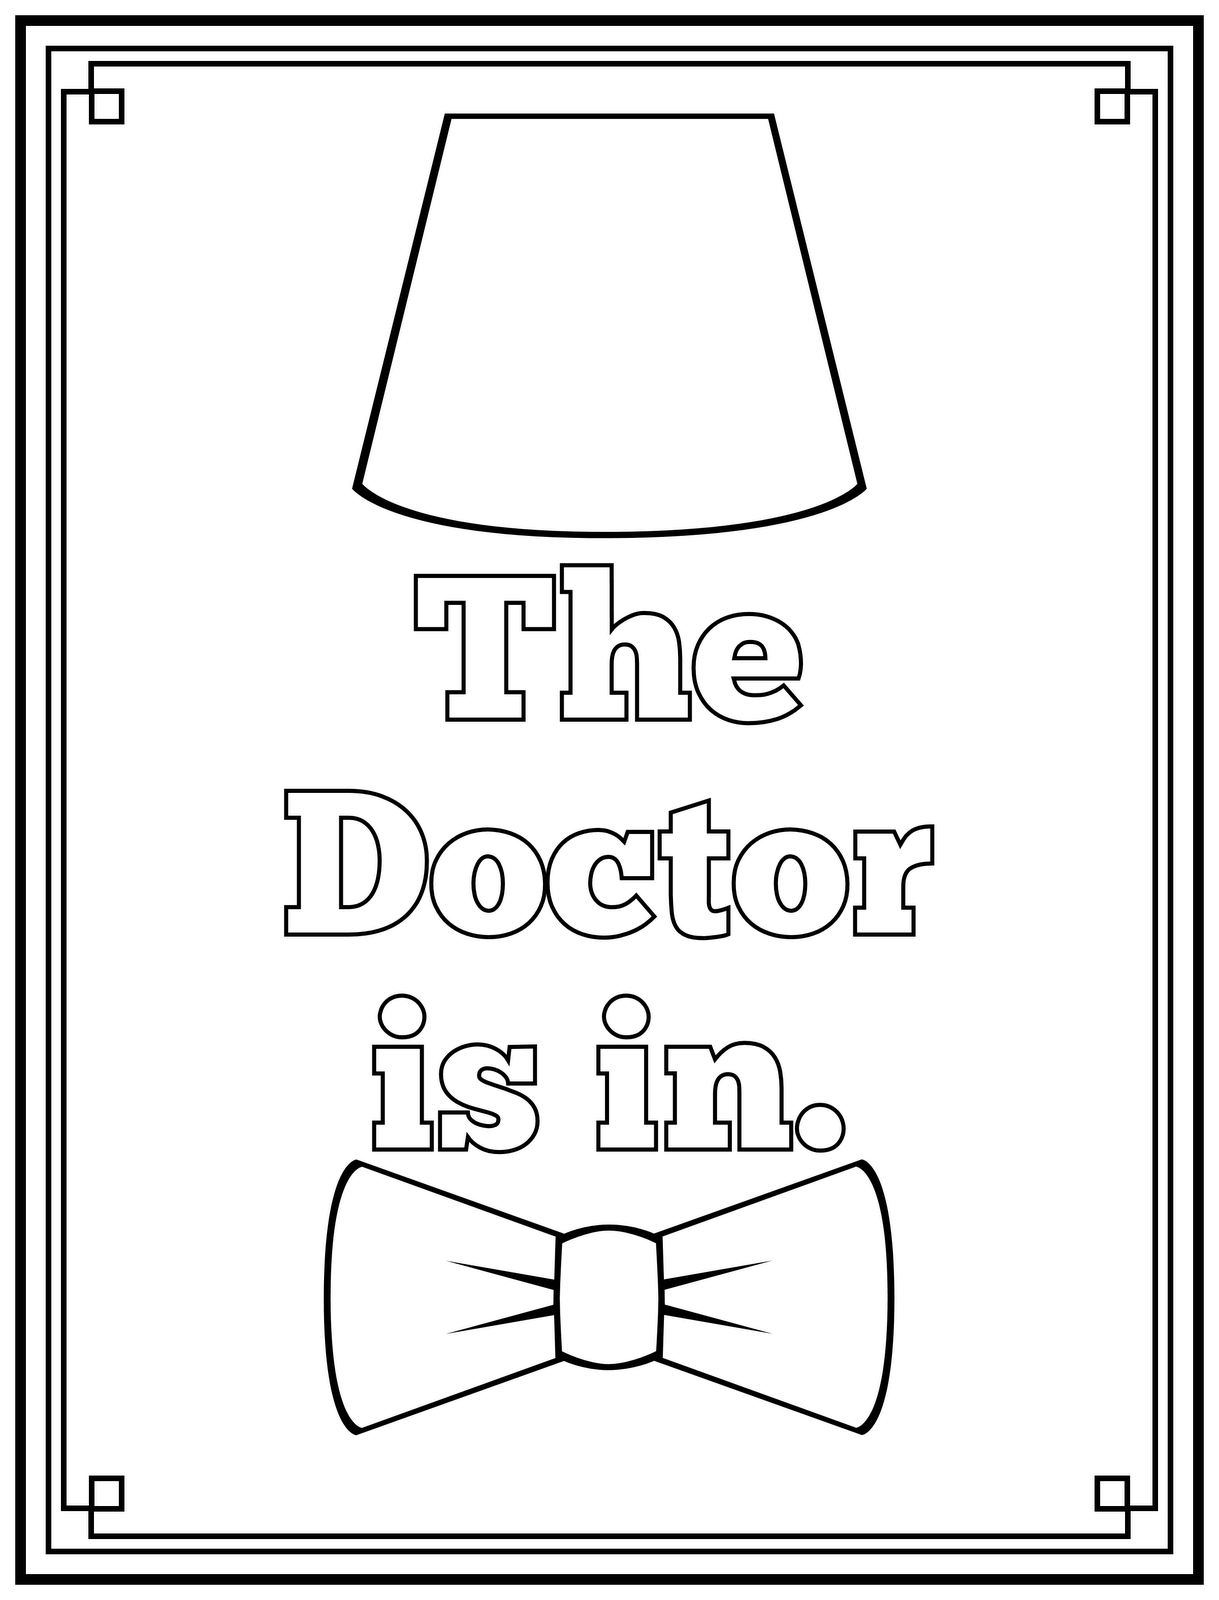 dr who coloring pages | Dont Eat the Paste: The Doctor Is IN ...